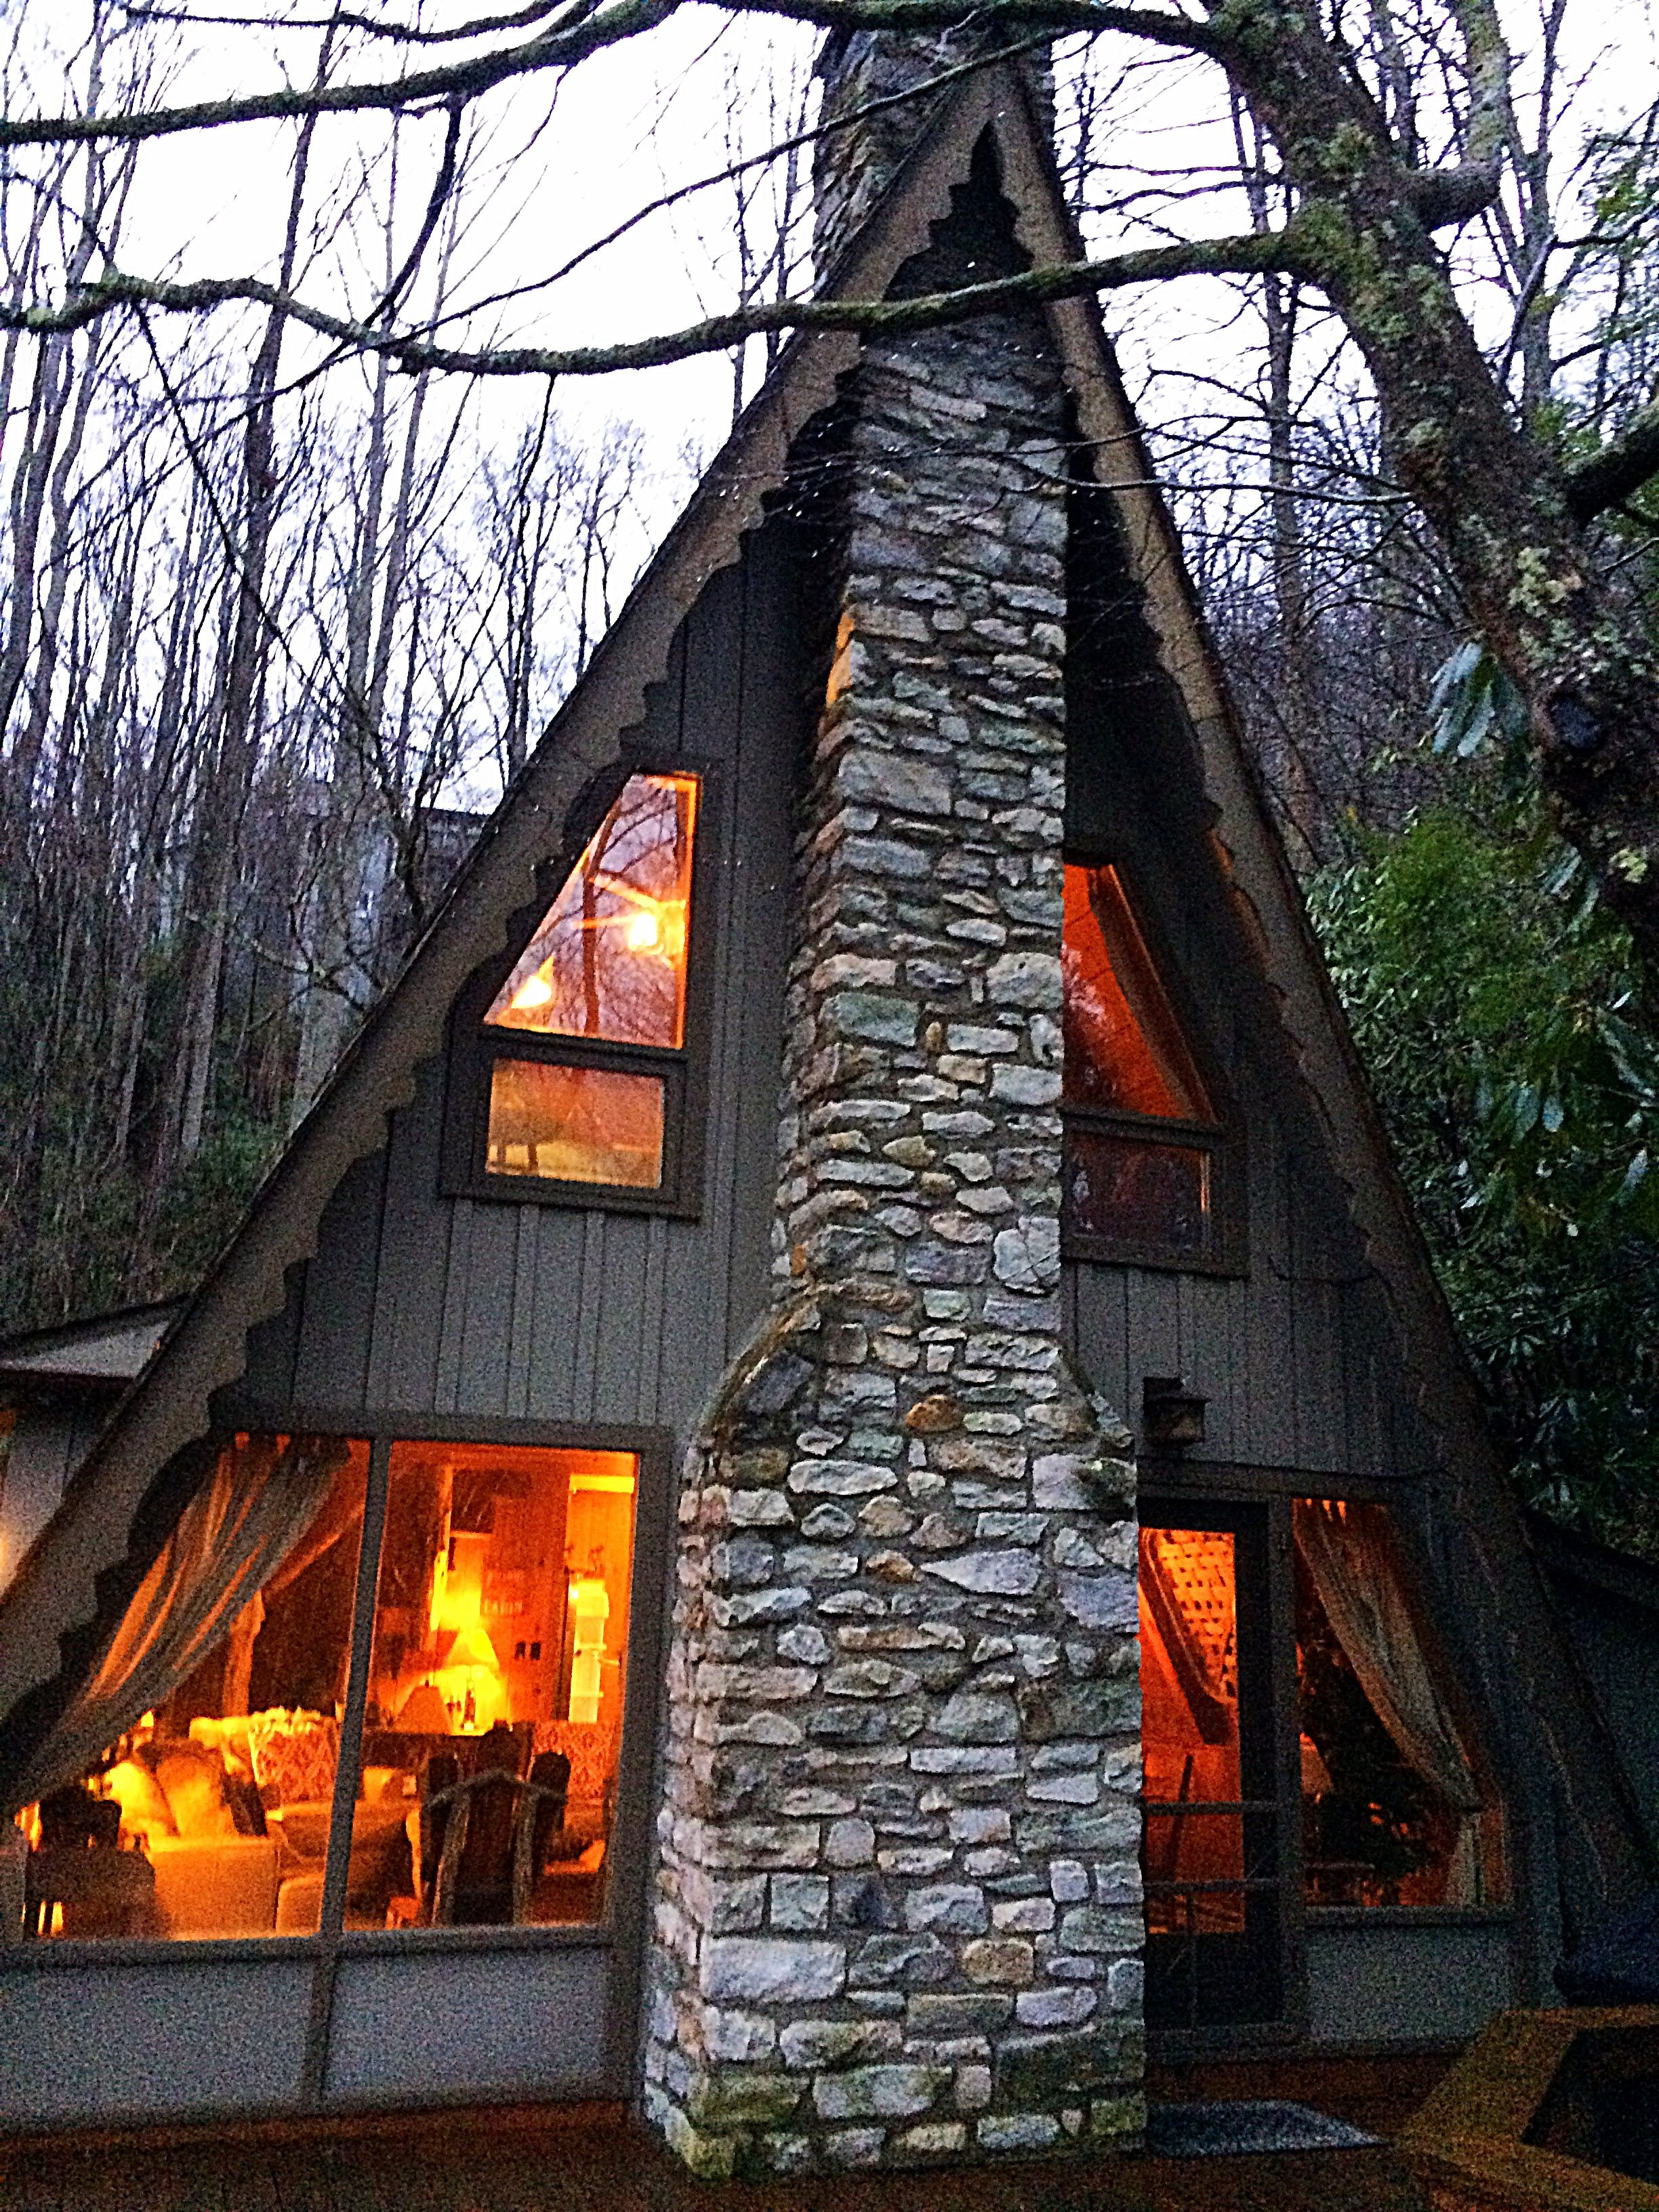 A Frame Cabin in Boone, NC | Melton\'s Travel | Pinterest | Cabin ...